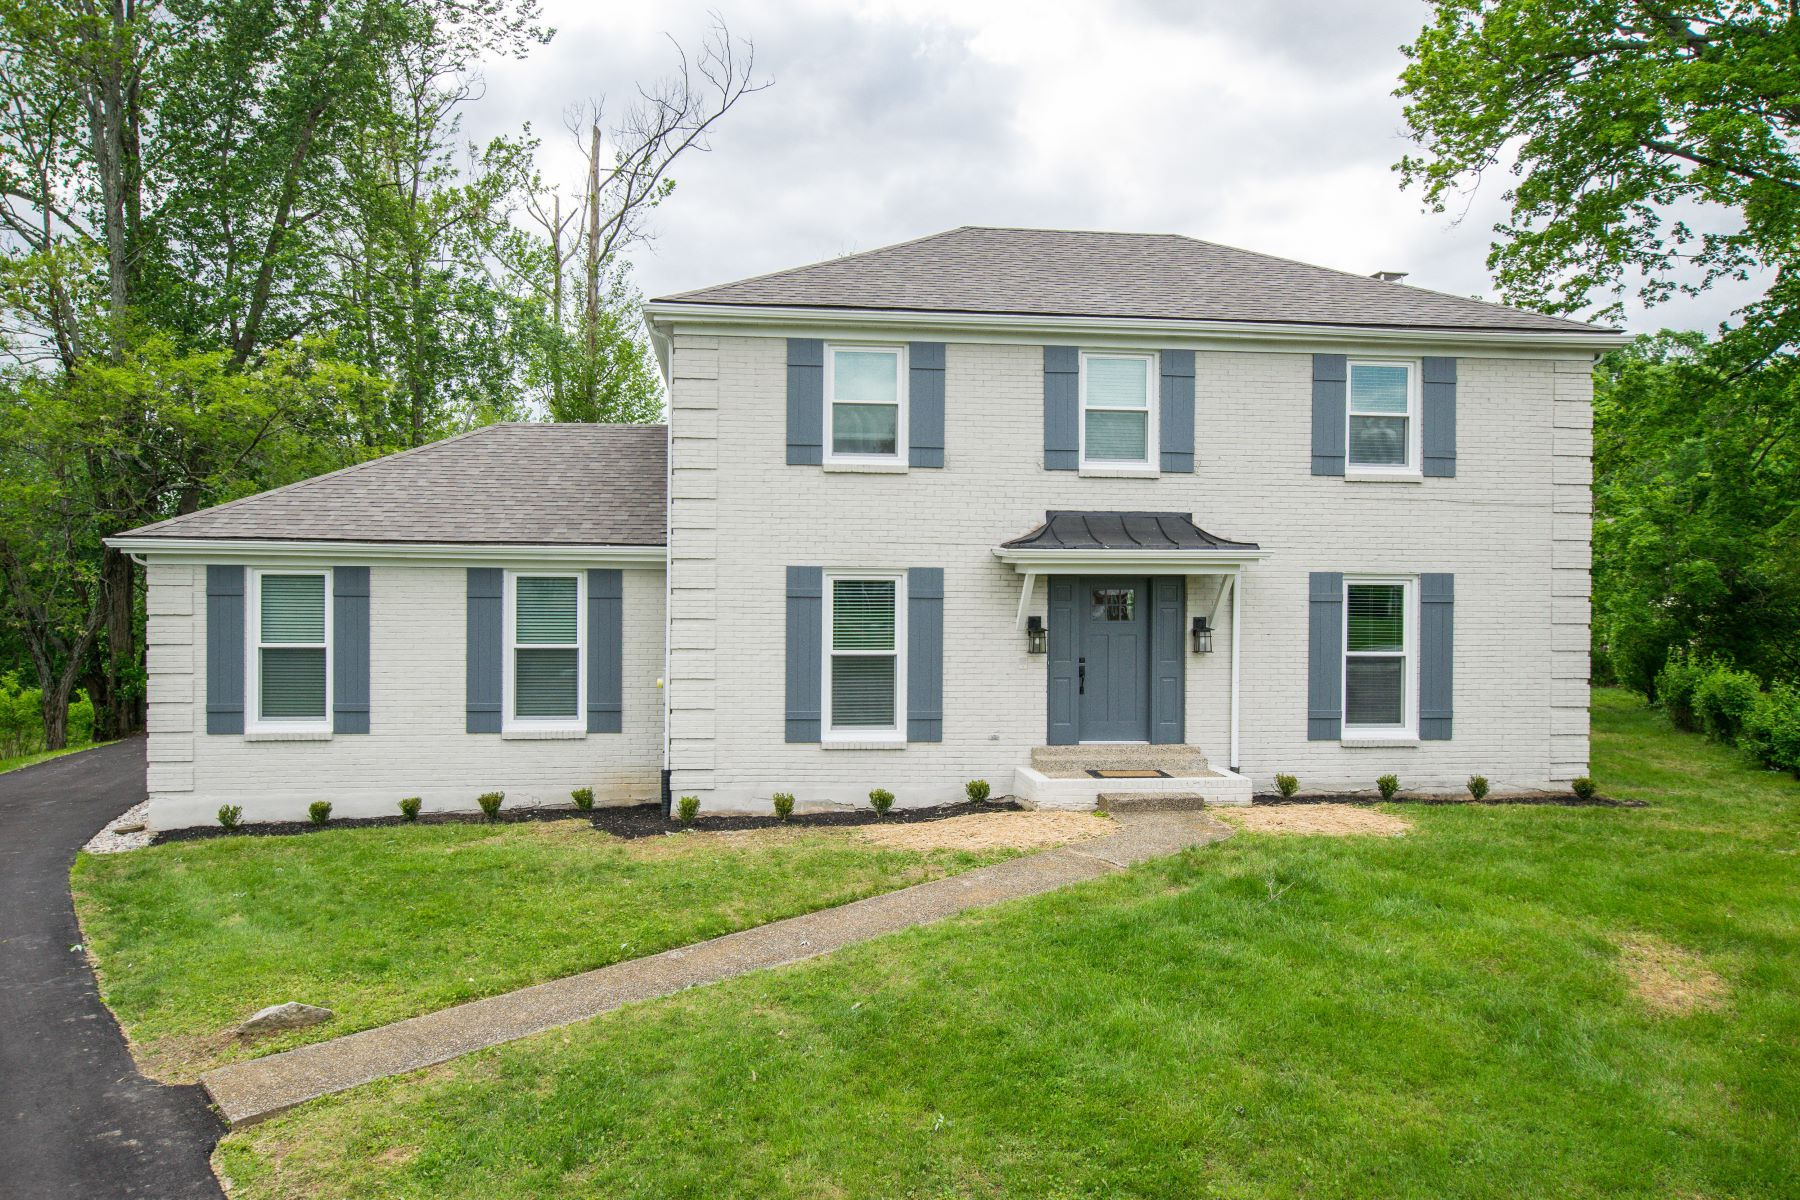 Single Family Home for Rent at 8700 Lynnhall Court Prospect, Kentucky 40059 United States